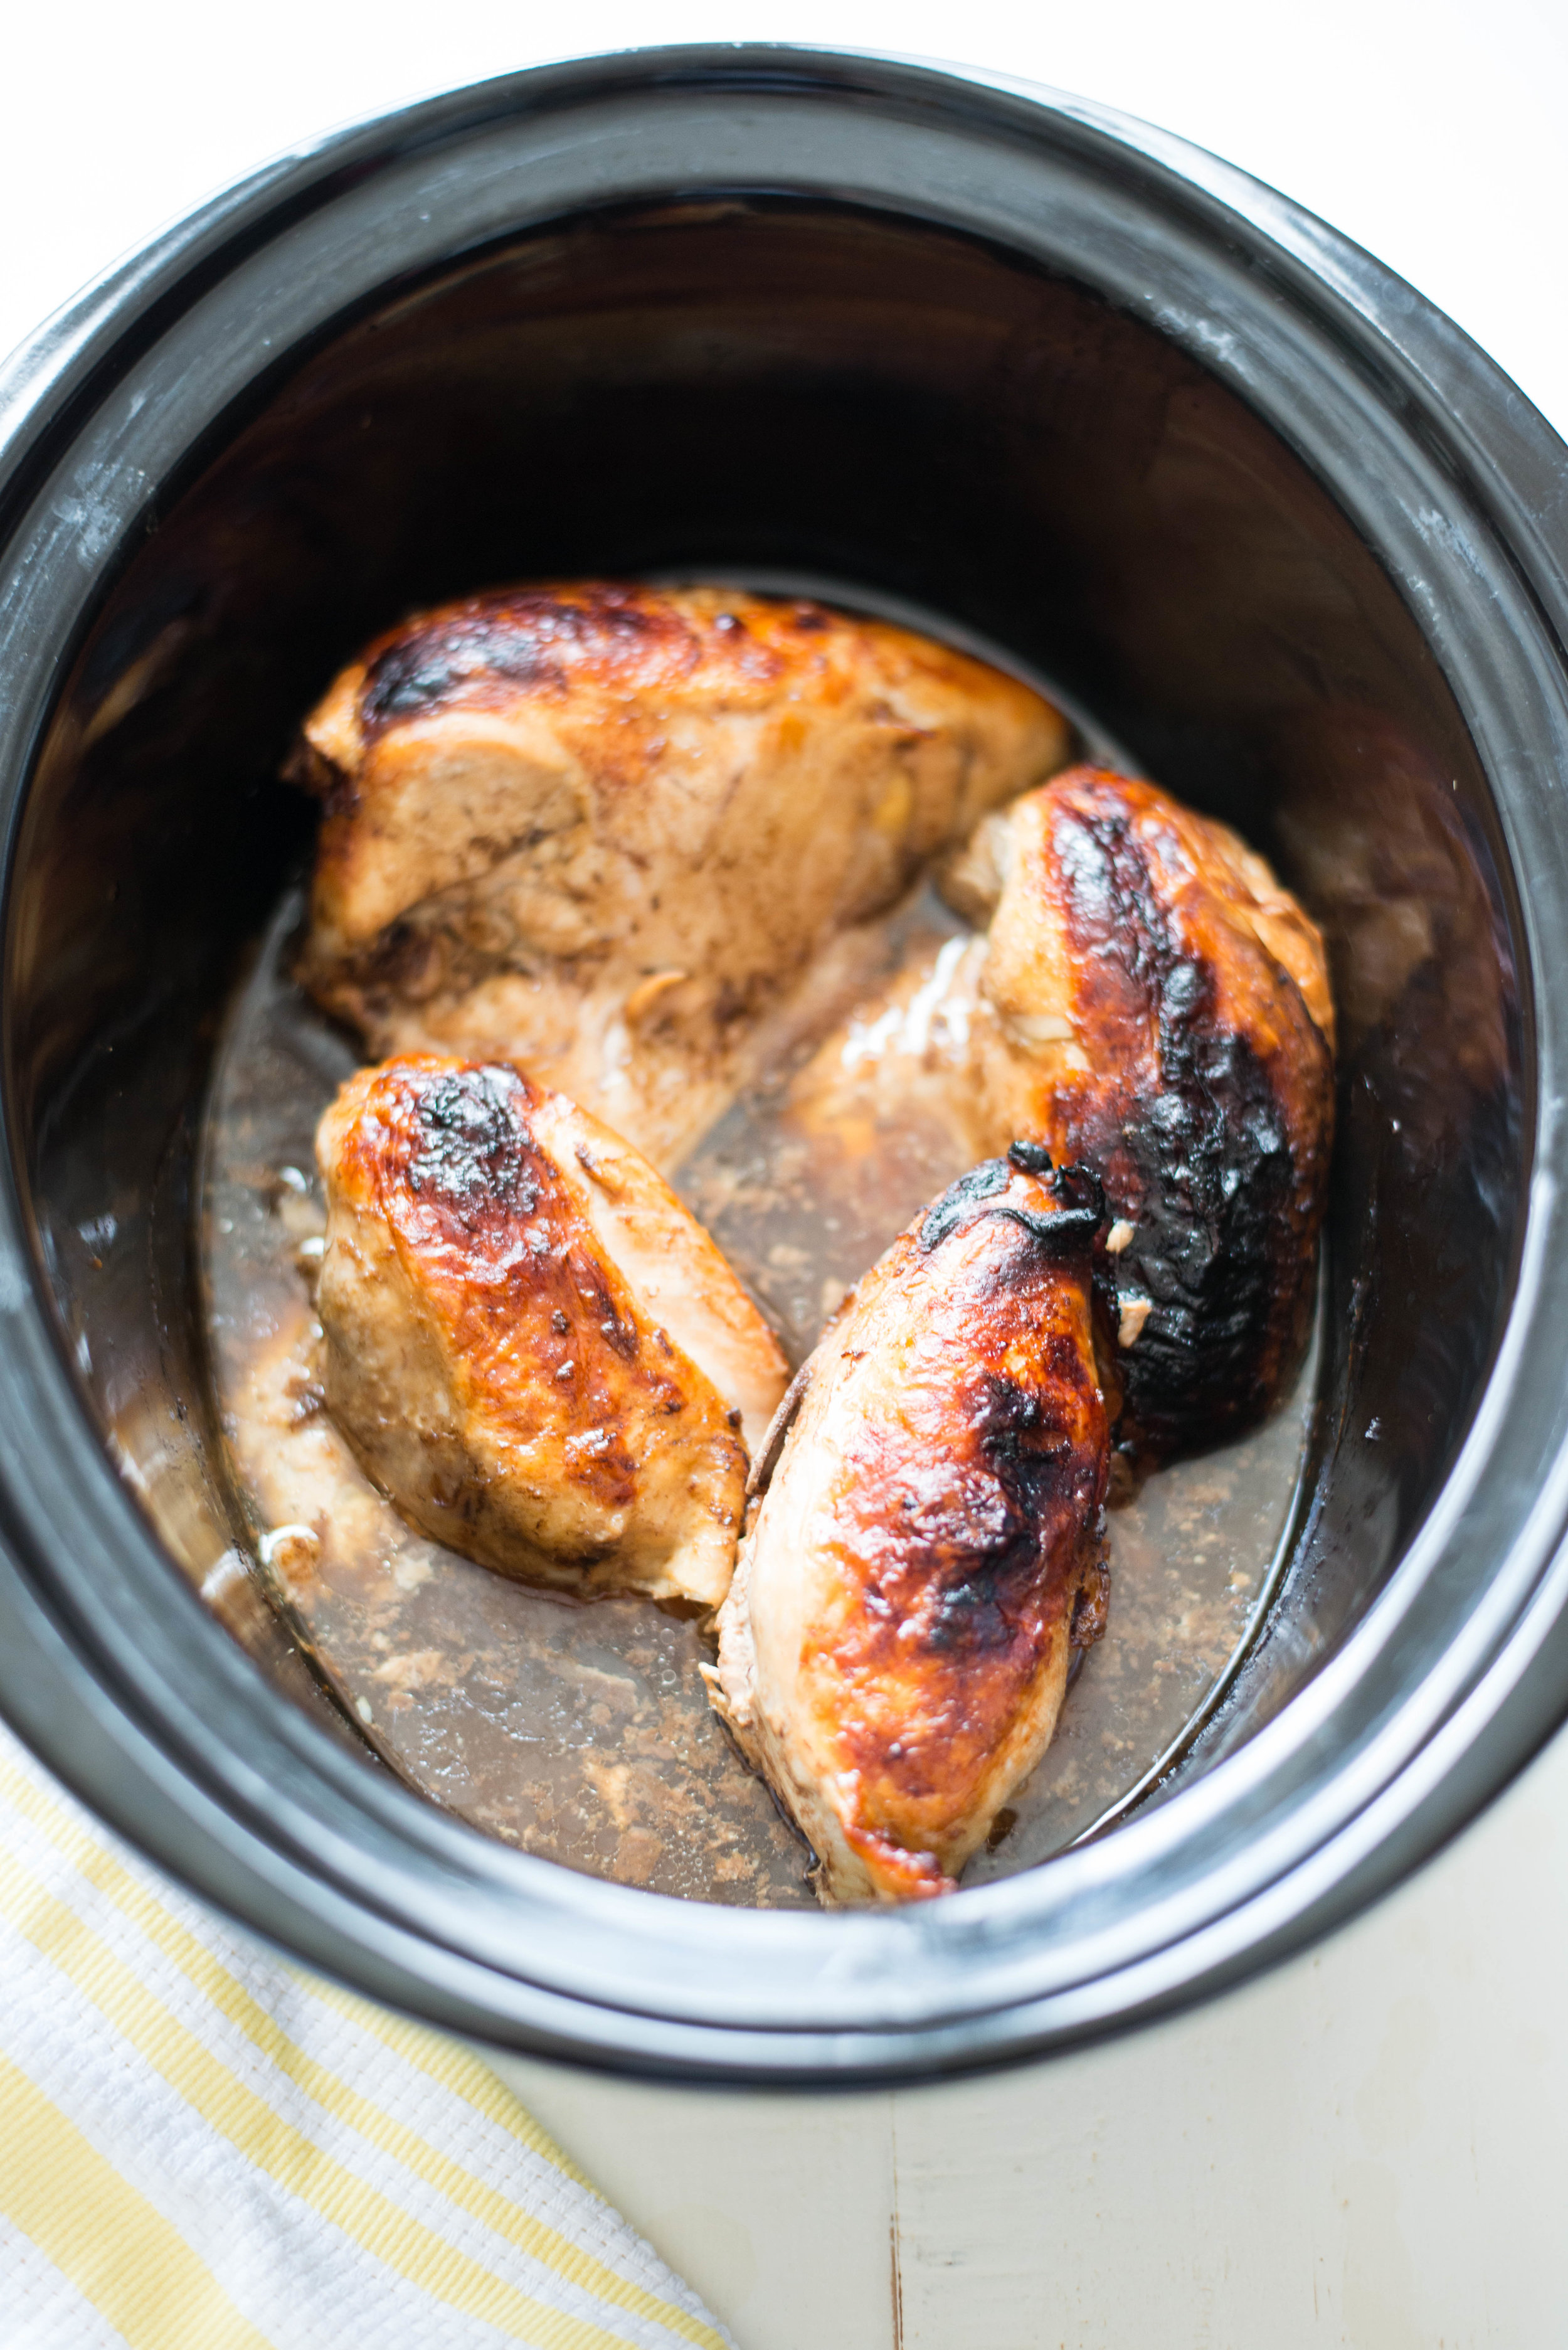 5 simple ingredients combine in juicy, succulent 5-Ingredient Slow Cooker Garlic Balsamic Chicken, an effortless dinner recipe any night of the week. healthy, paleo, whole30